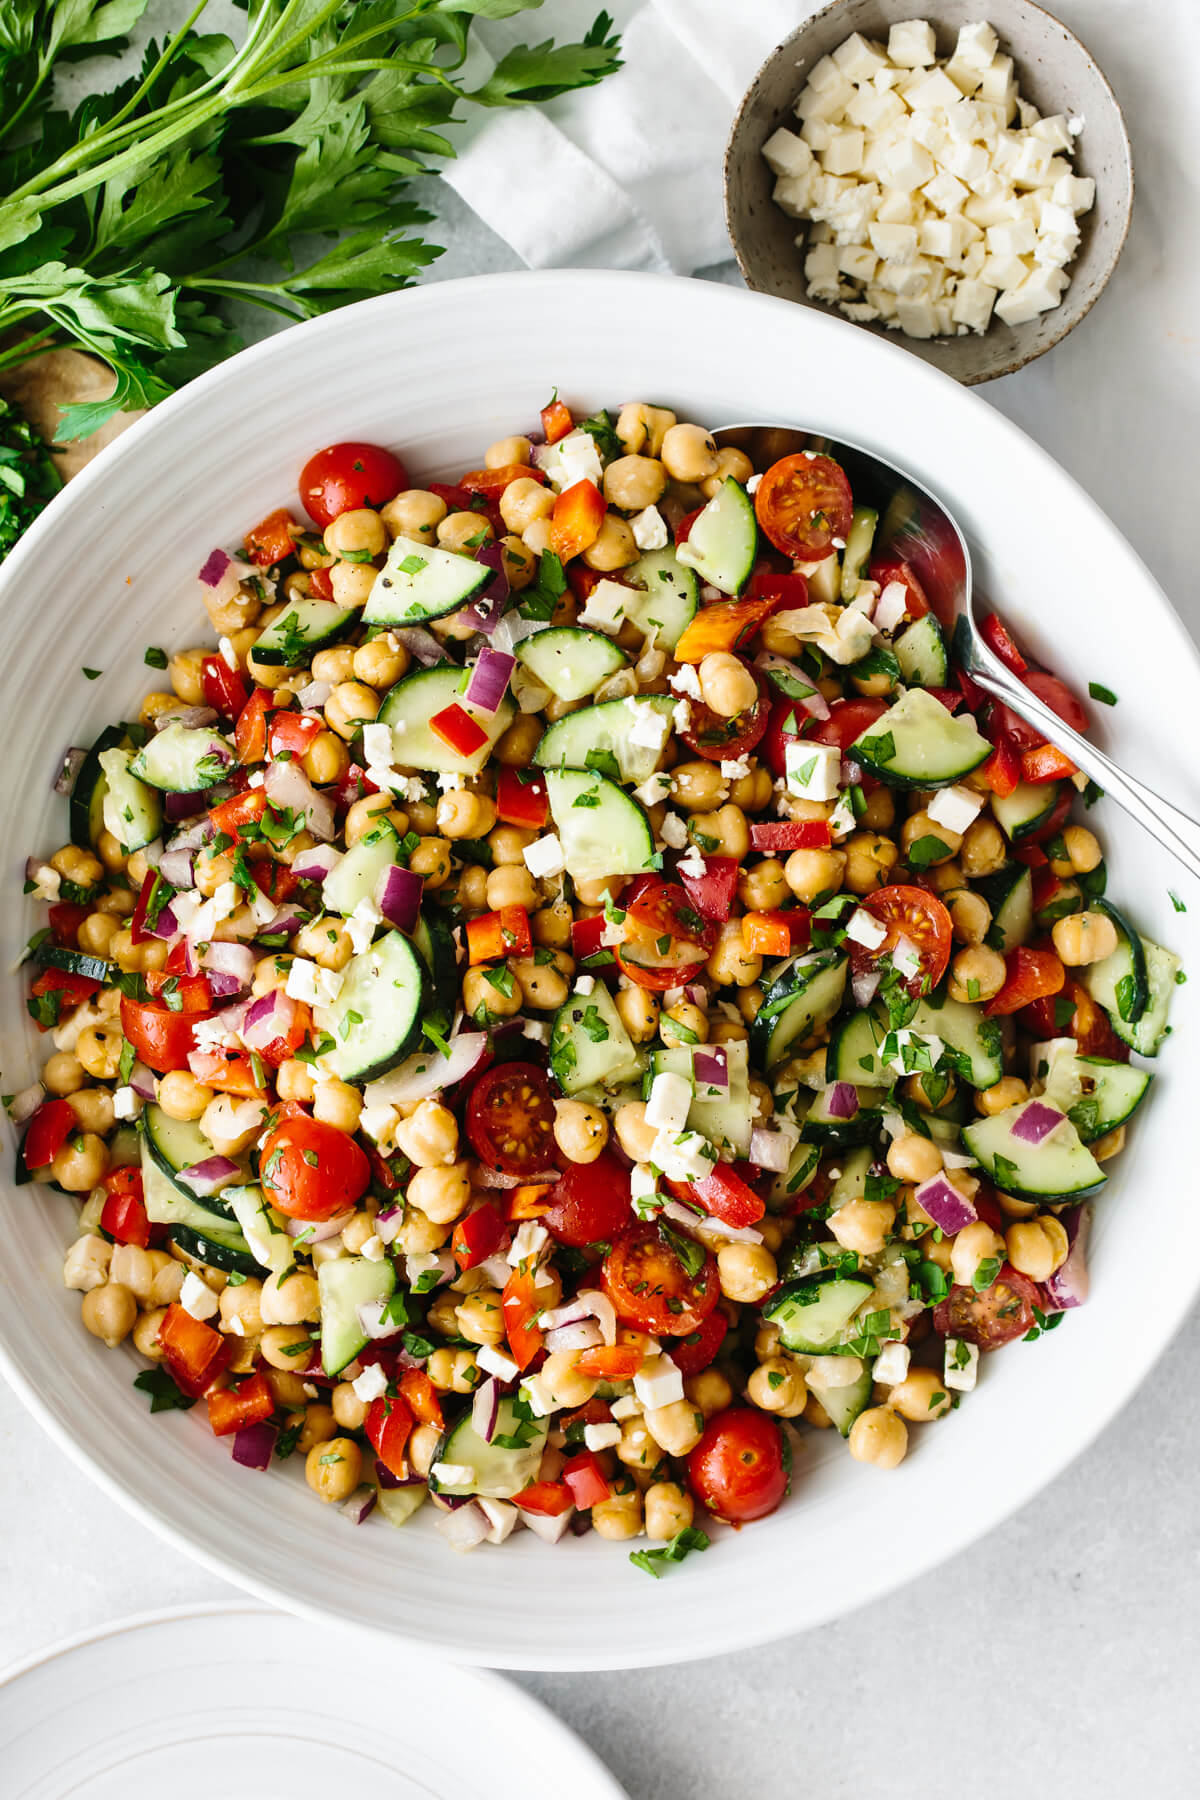 Mediterranean chickpea salad in a large white bowl on a table.